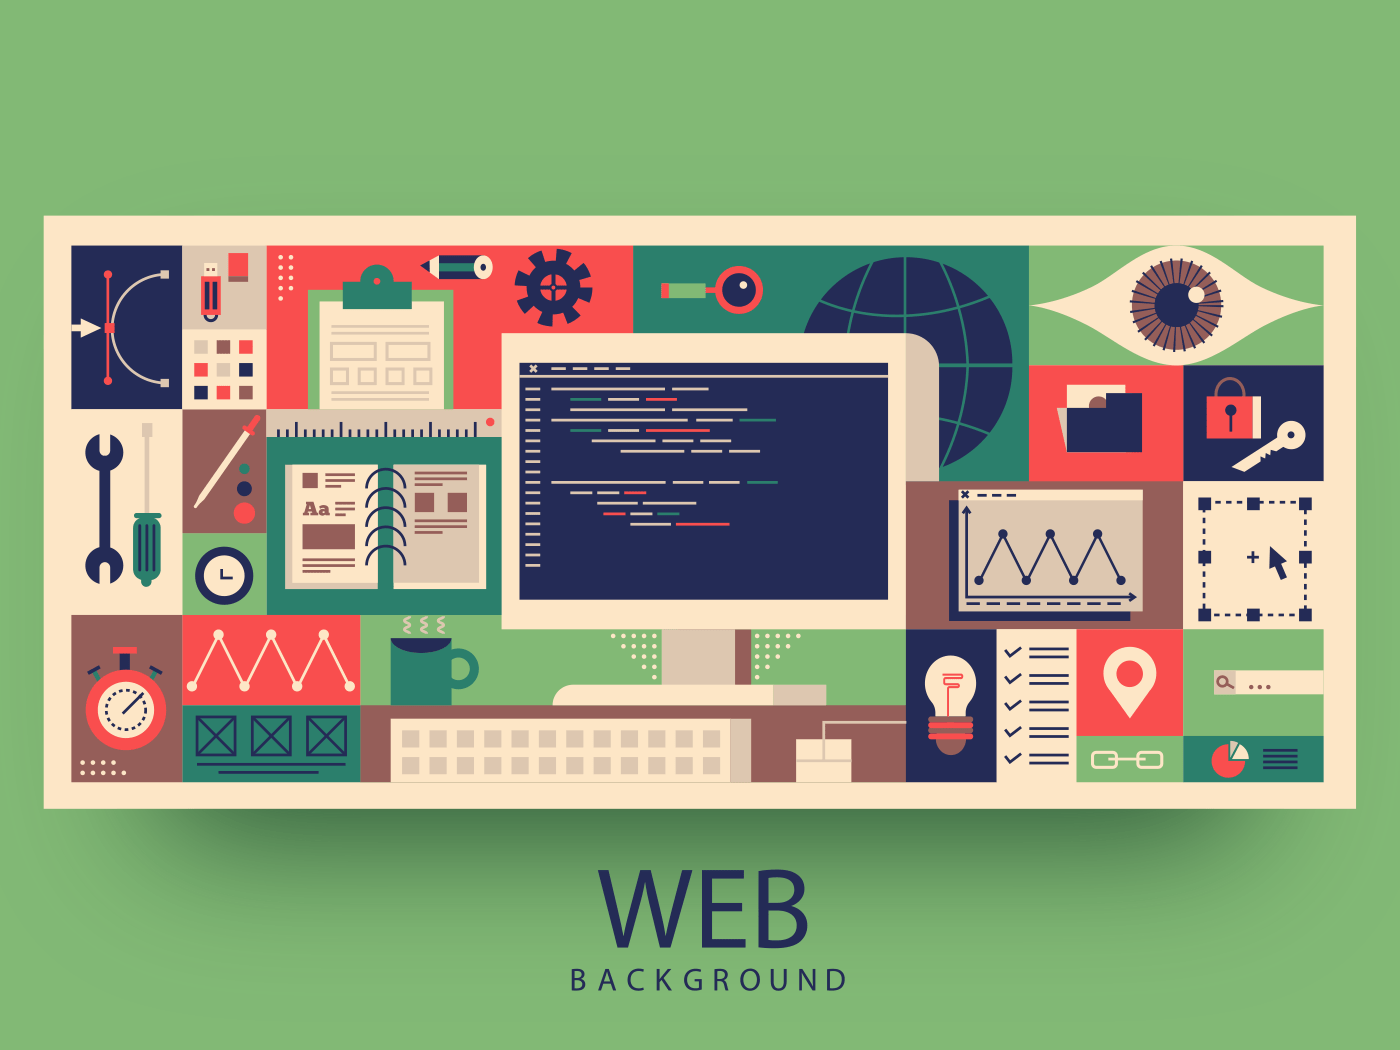 Web programming background vector illustration